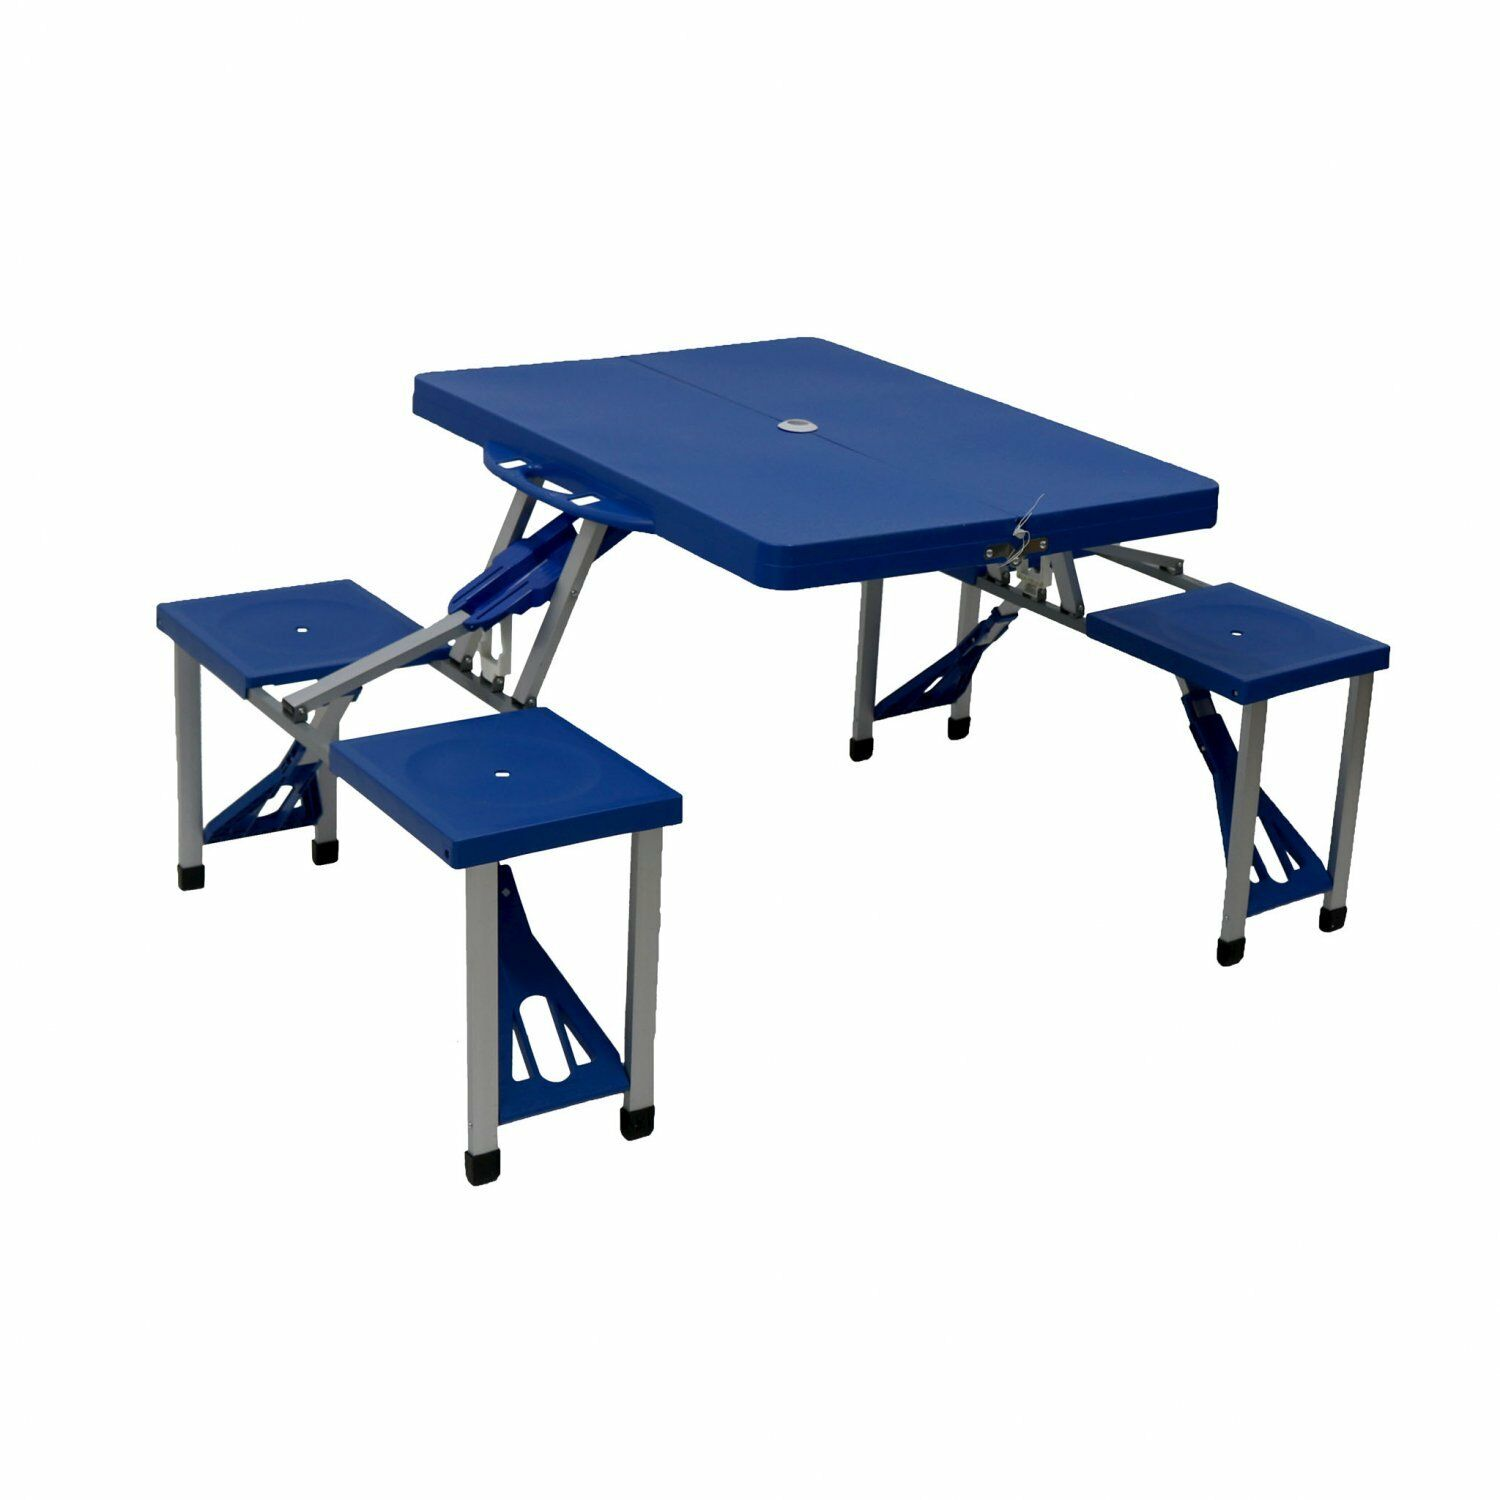 NEW  Portable Folding Outdoor Picnic Pit Table and Bench Set 4 Seats